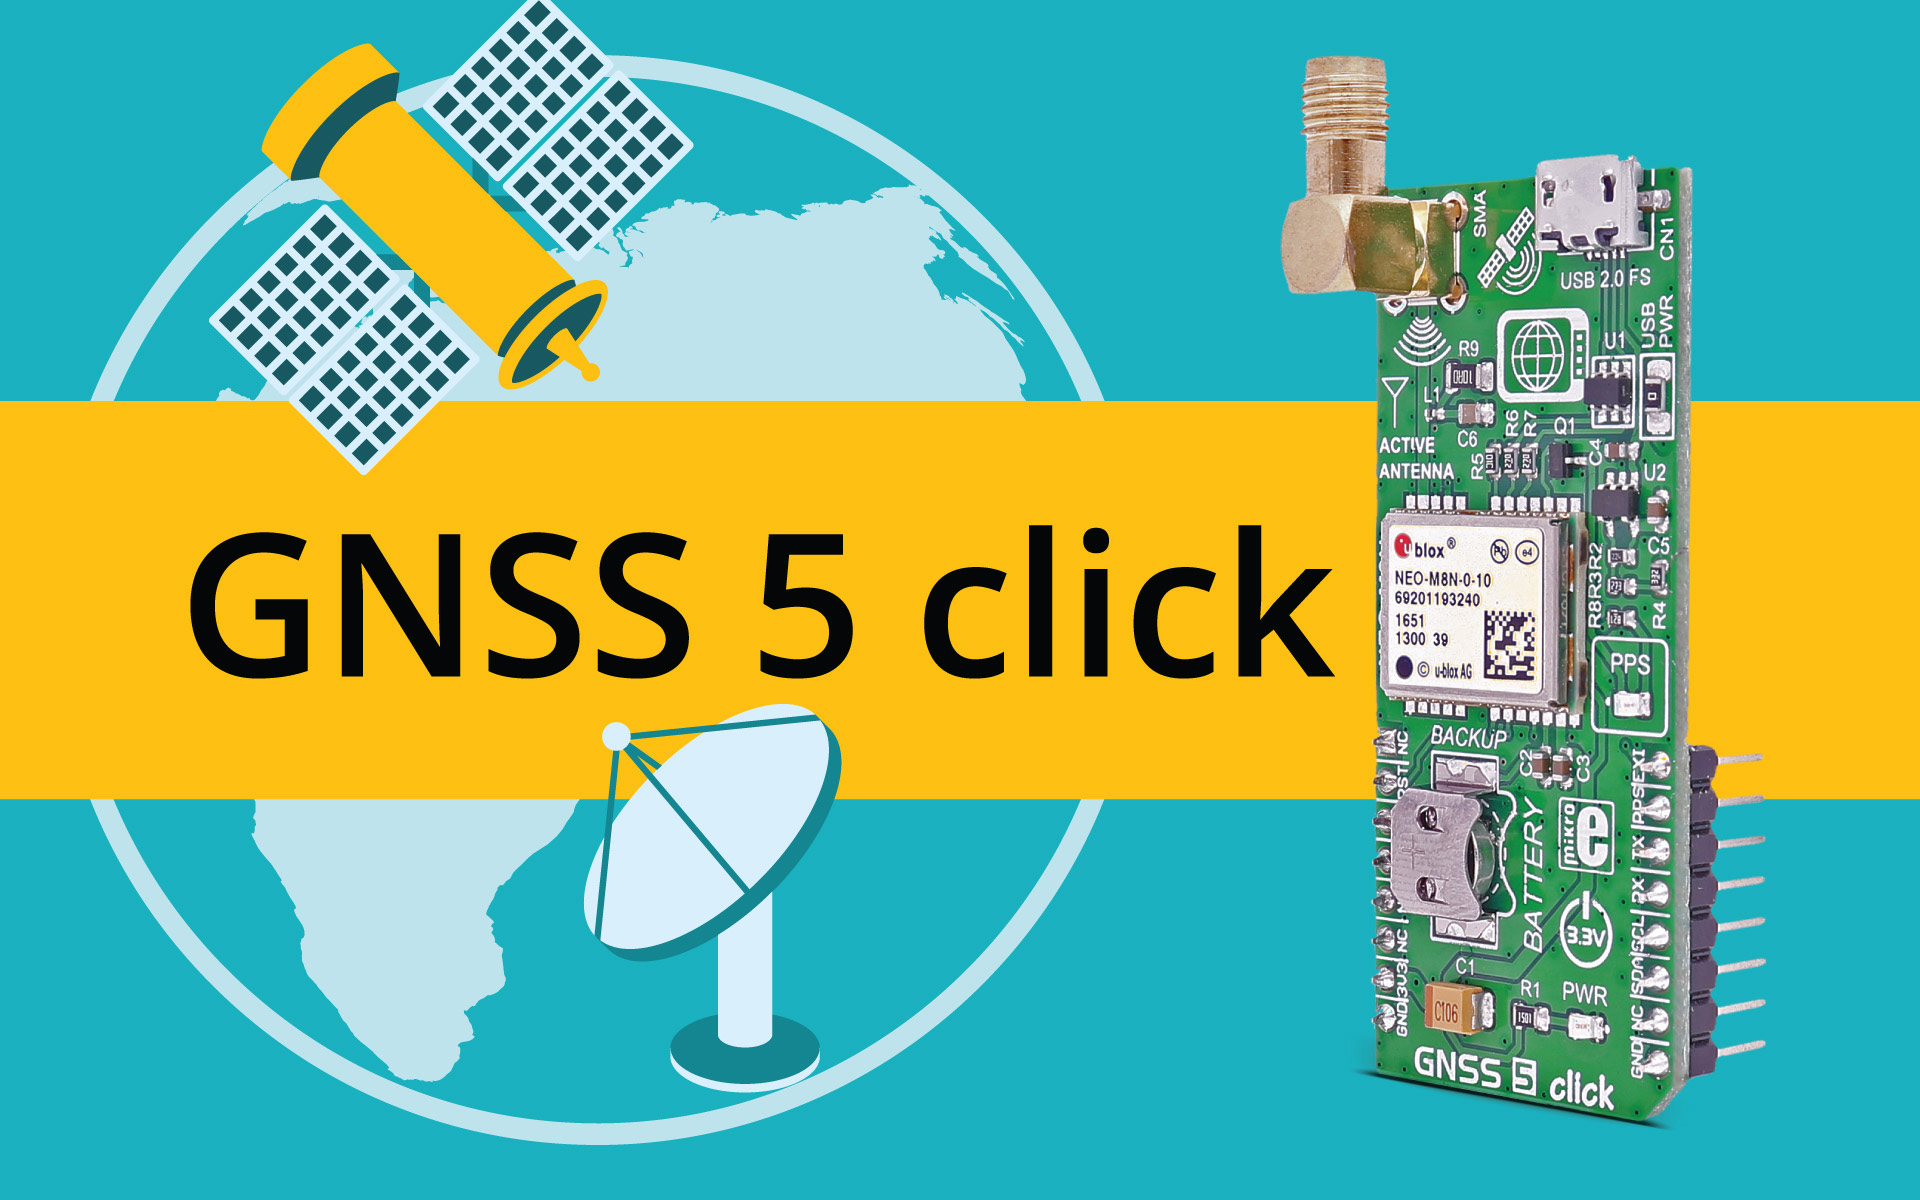 GNSS 5 click - determine your position